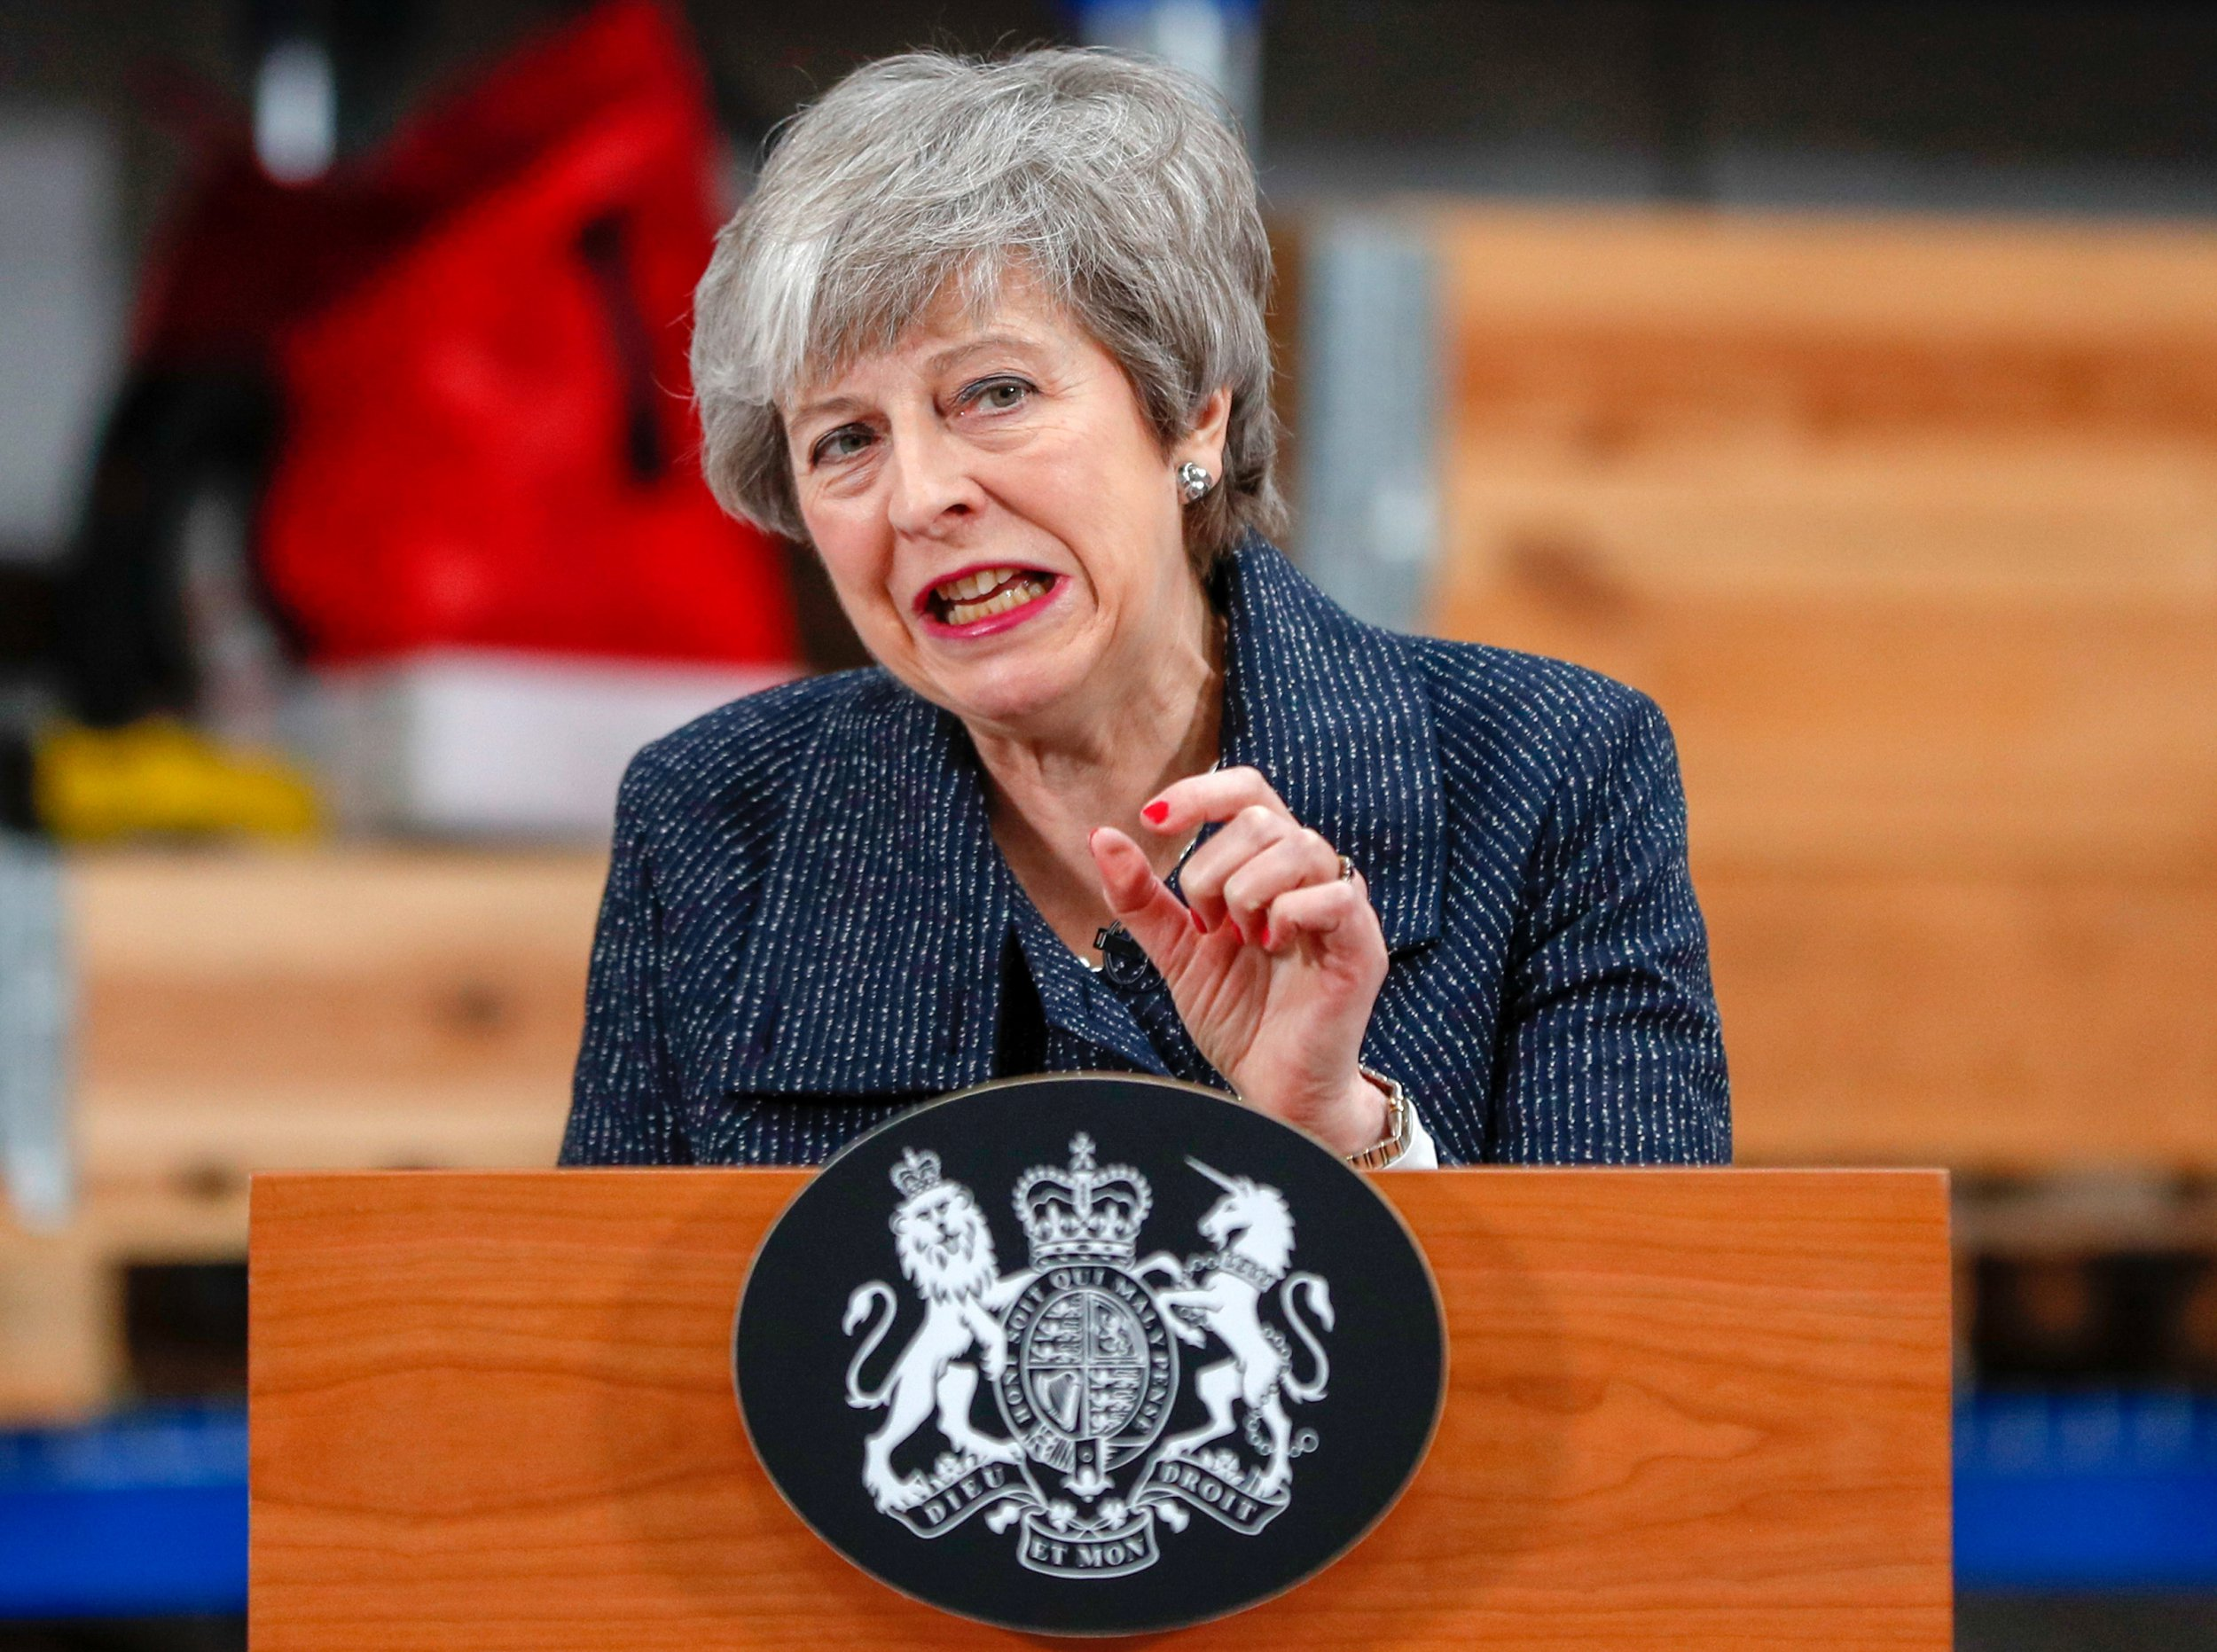 epa07422265 British Prime Minister Theresa May gives a speech at Orsted A/S manufacturing facility in Grimsby, Britain, 08 March 2019. May??appealed to members of Parliament to back her deal or risk seeing Brexit canceled, as she urged the European Union to help come up with a compromise. EPA/Darren Staples / POOL